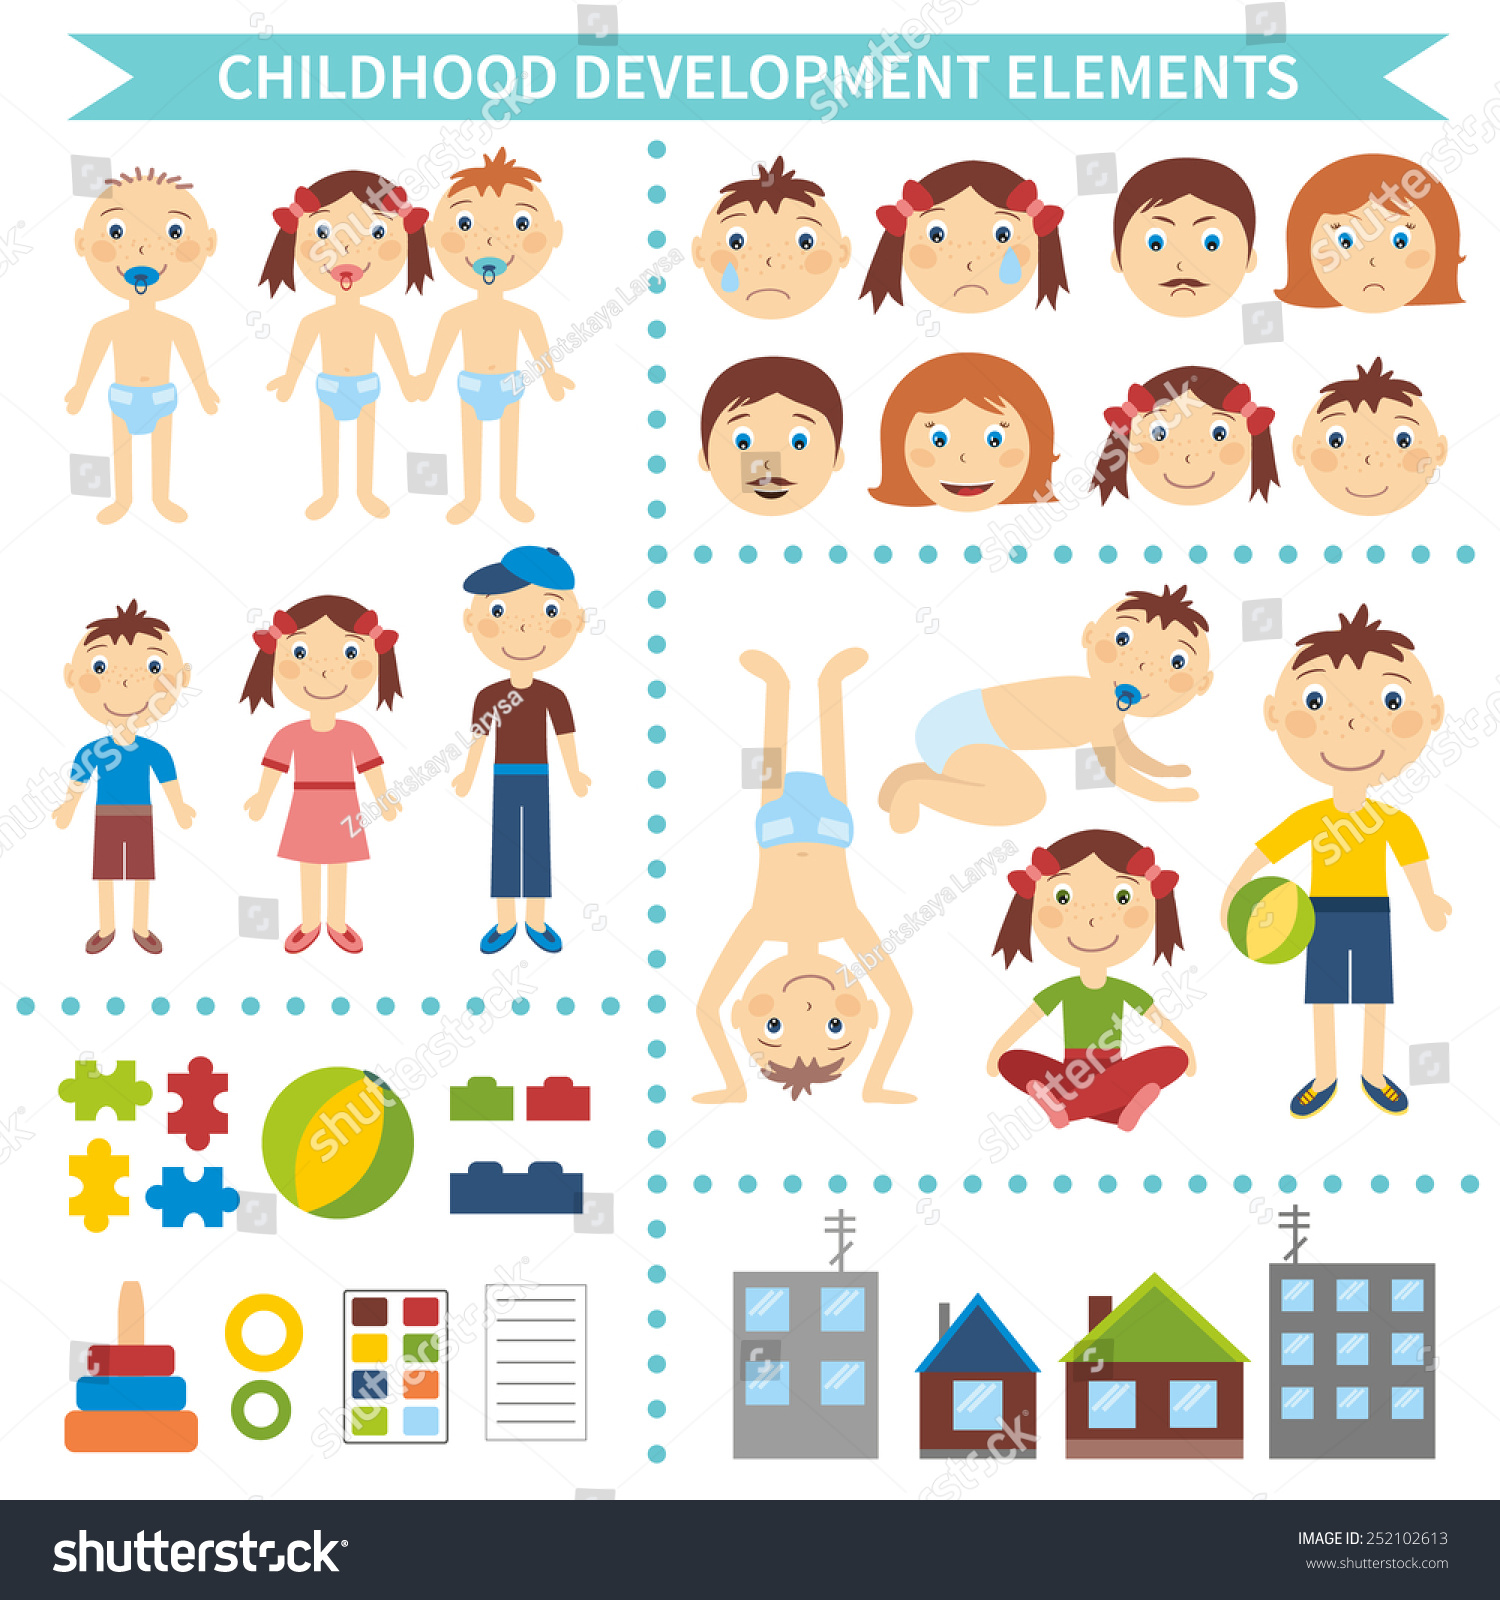 Early Childhood Development Elements Infographic Design Stock